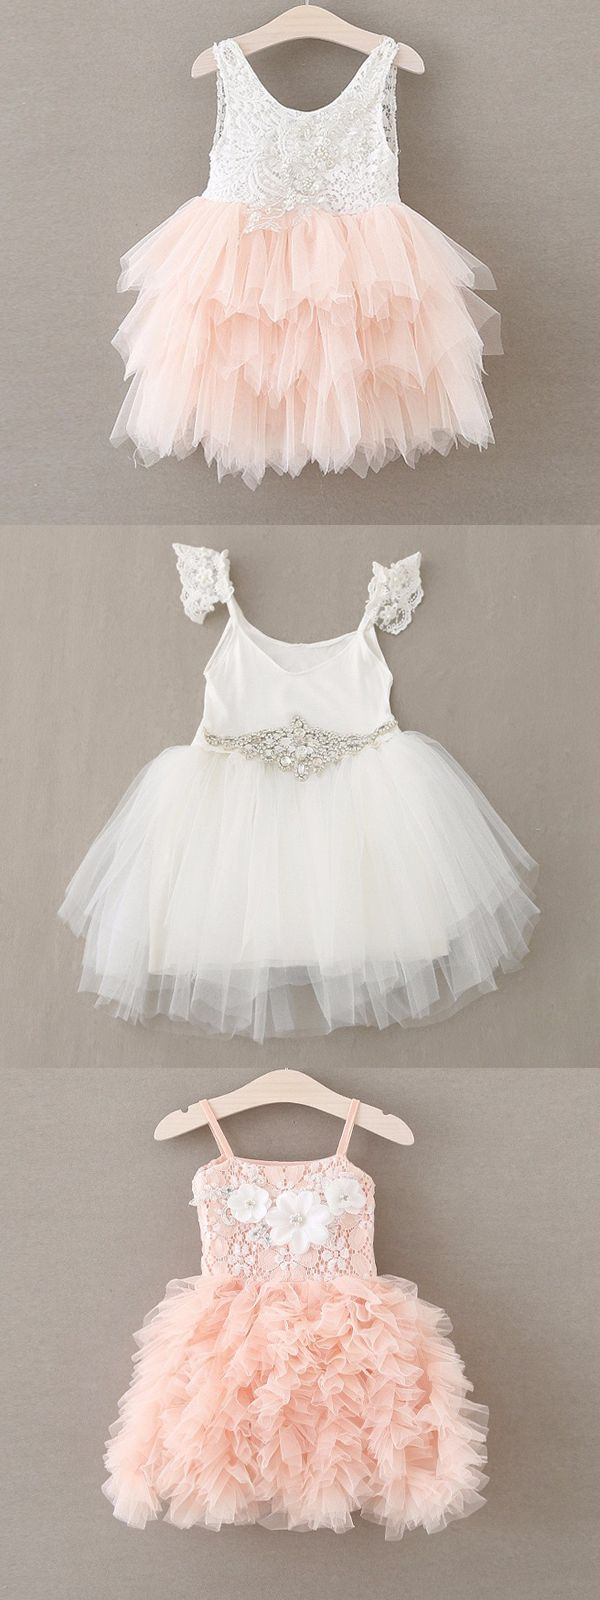 2 Flower Girl Lace Diamond Chiffon Tutu Dress